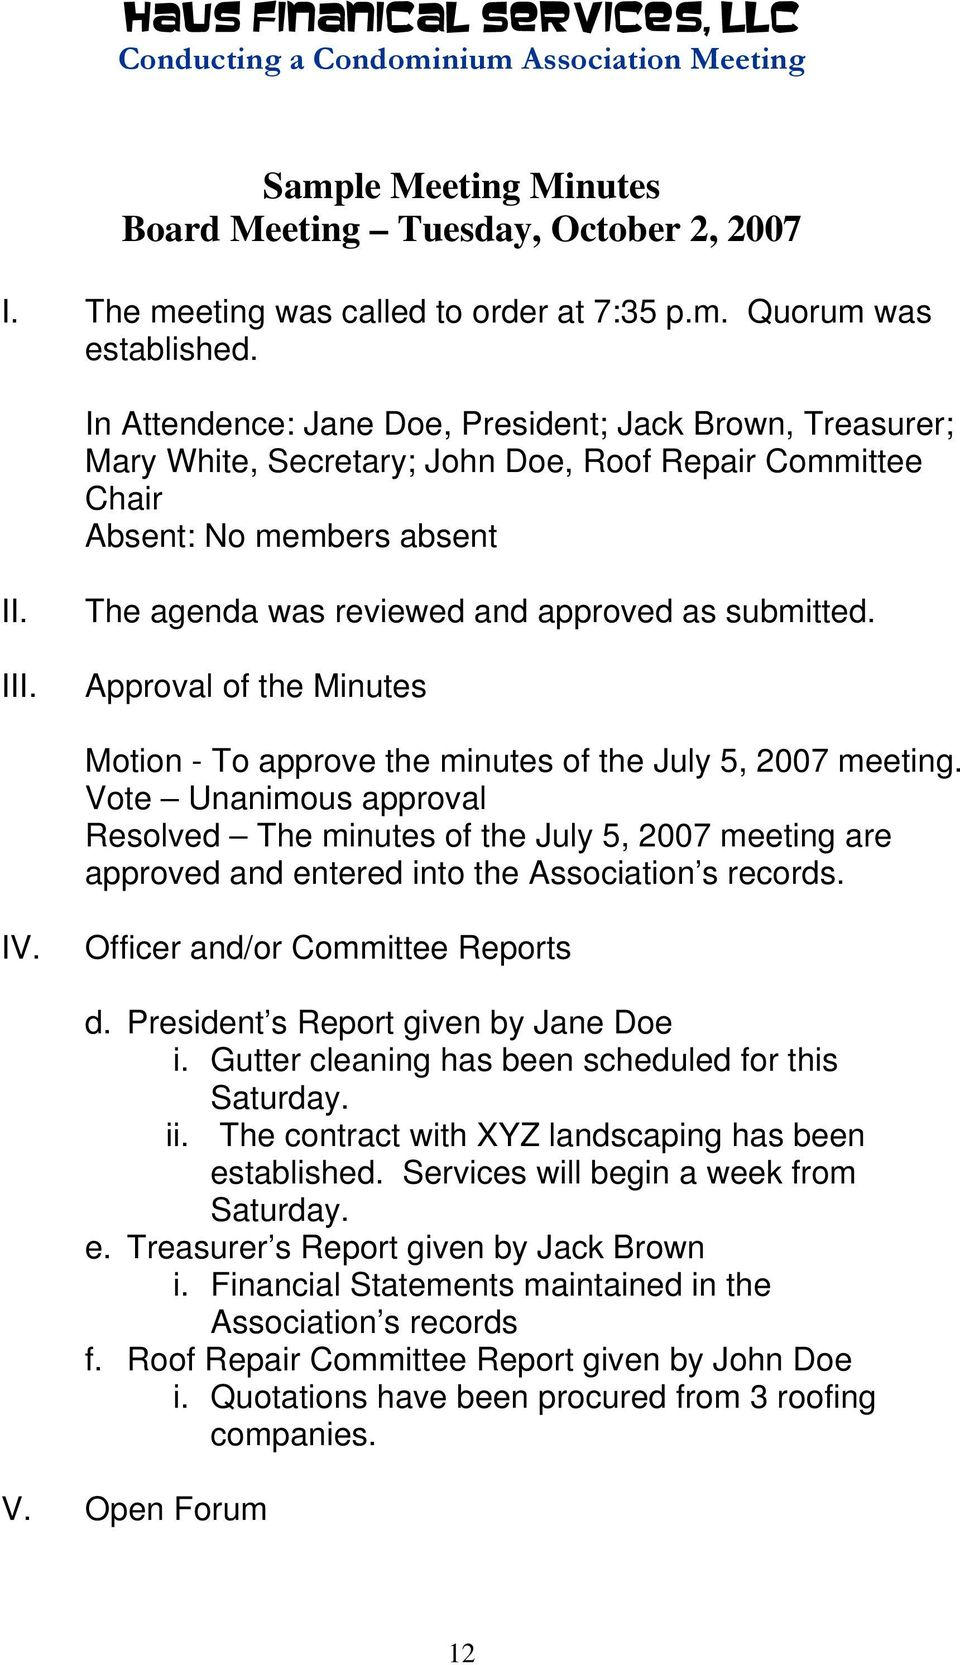 The agenda was reviewed and approved as submitted. Approval of the Minutes Motion - To approve the minutes of the July 5, 2007 meeting.